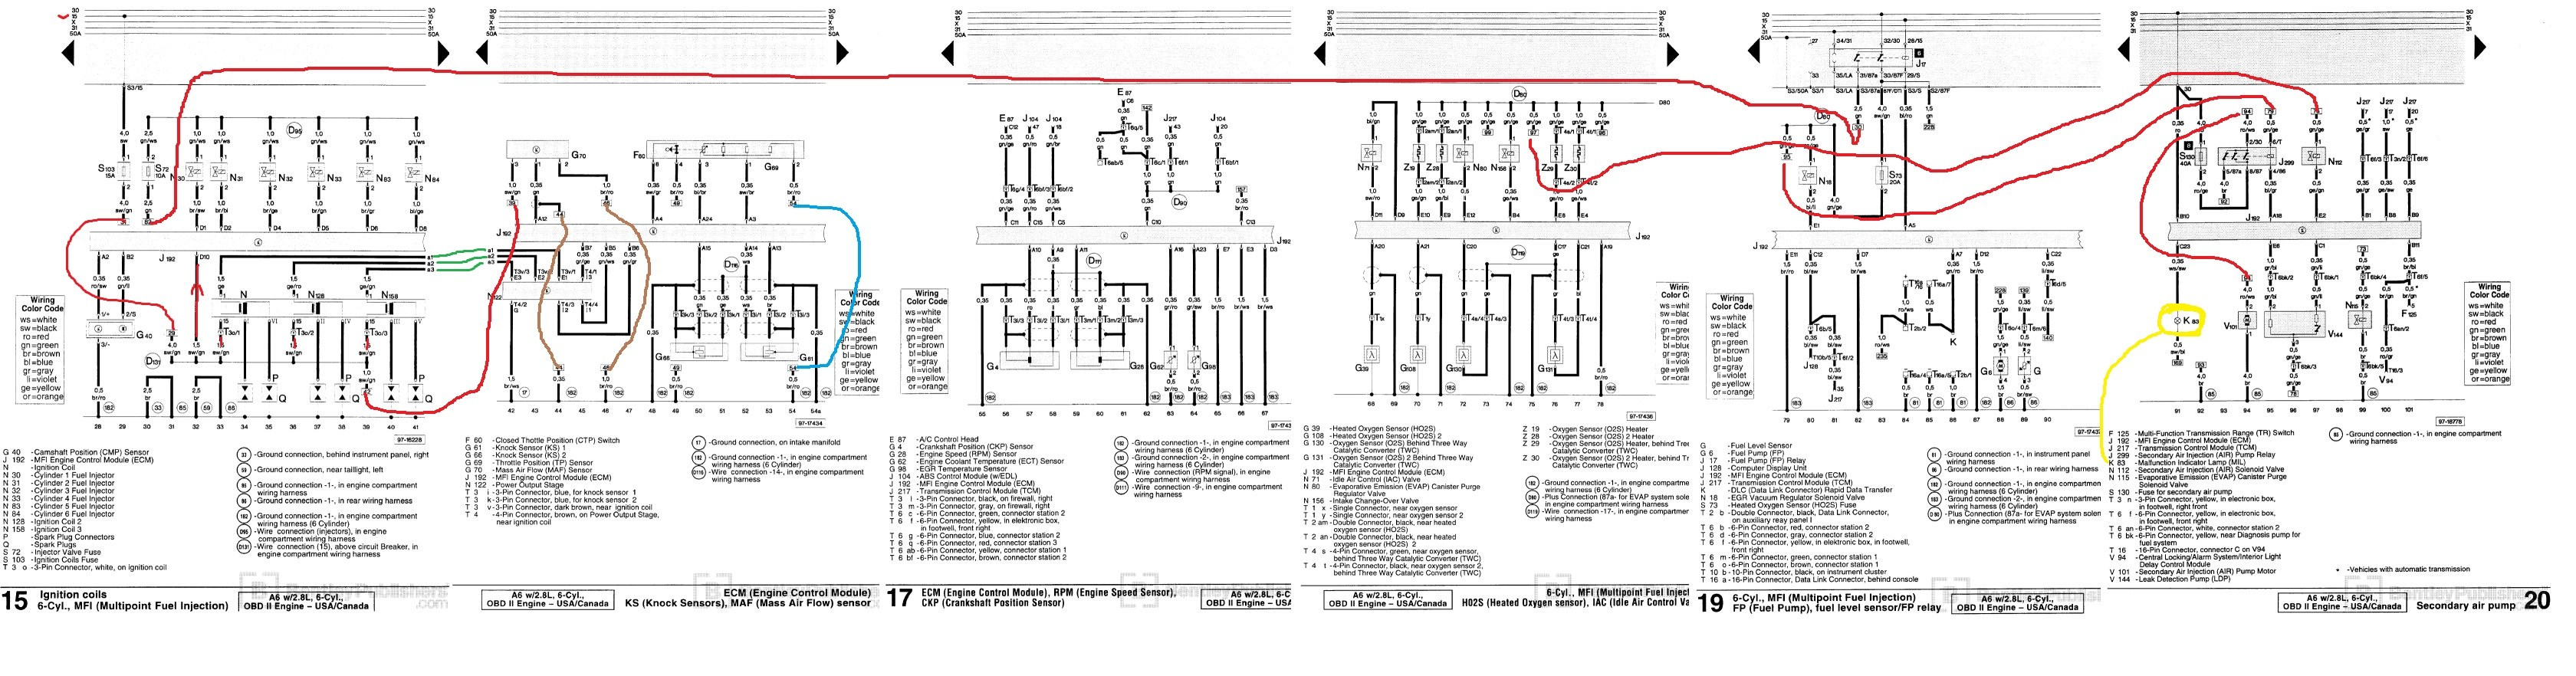 audi wiring diagram a6 wiring schematic for 1999 audi a6 ireng aceh tintenglueck de  wiring schematic for 1999 audi a6